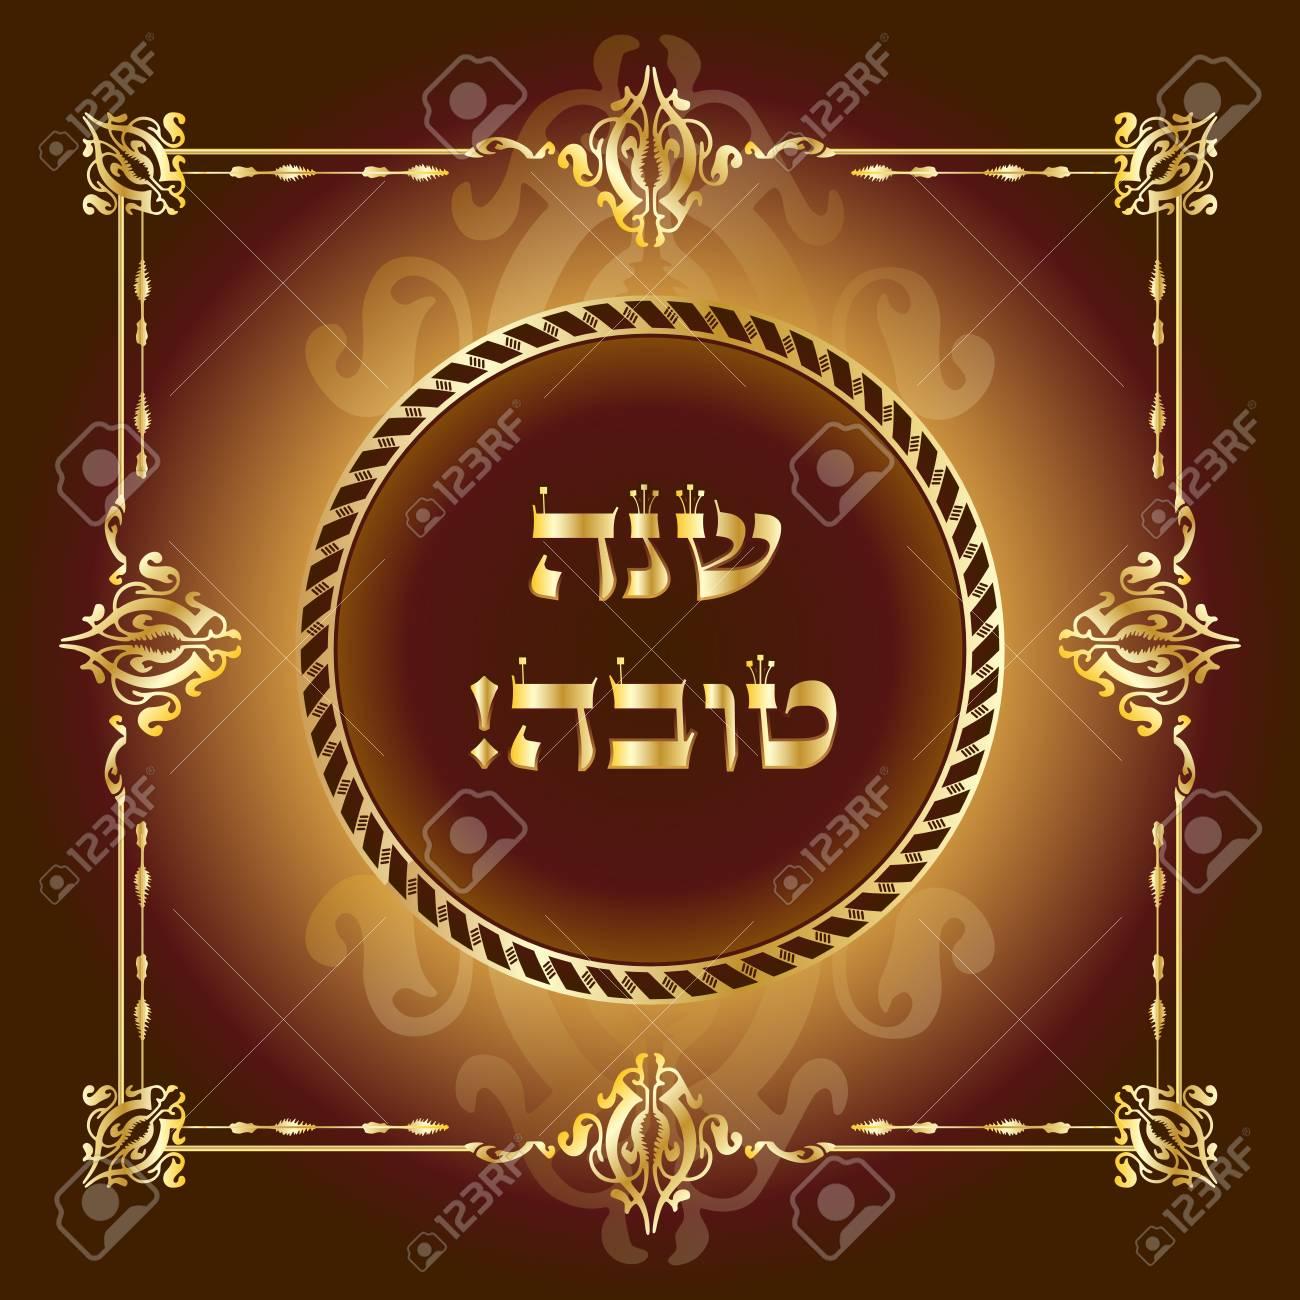 Rosh hashanah card jewish new year greeting text shana tova rosh hashanah card jewish new year greeting text shana tova on hebrew have m4hsunfo